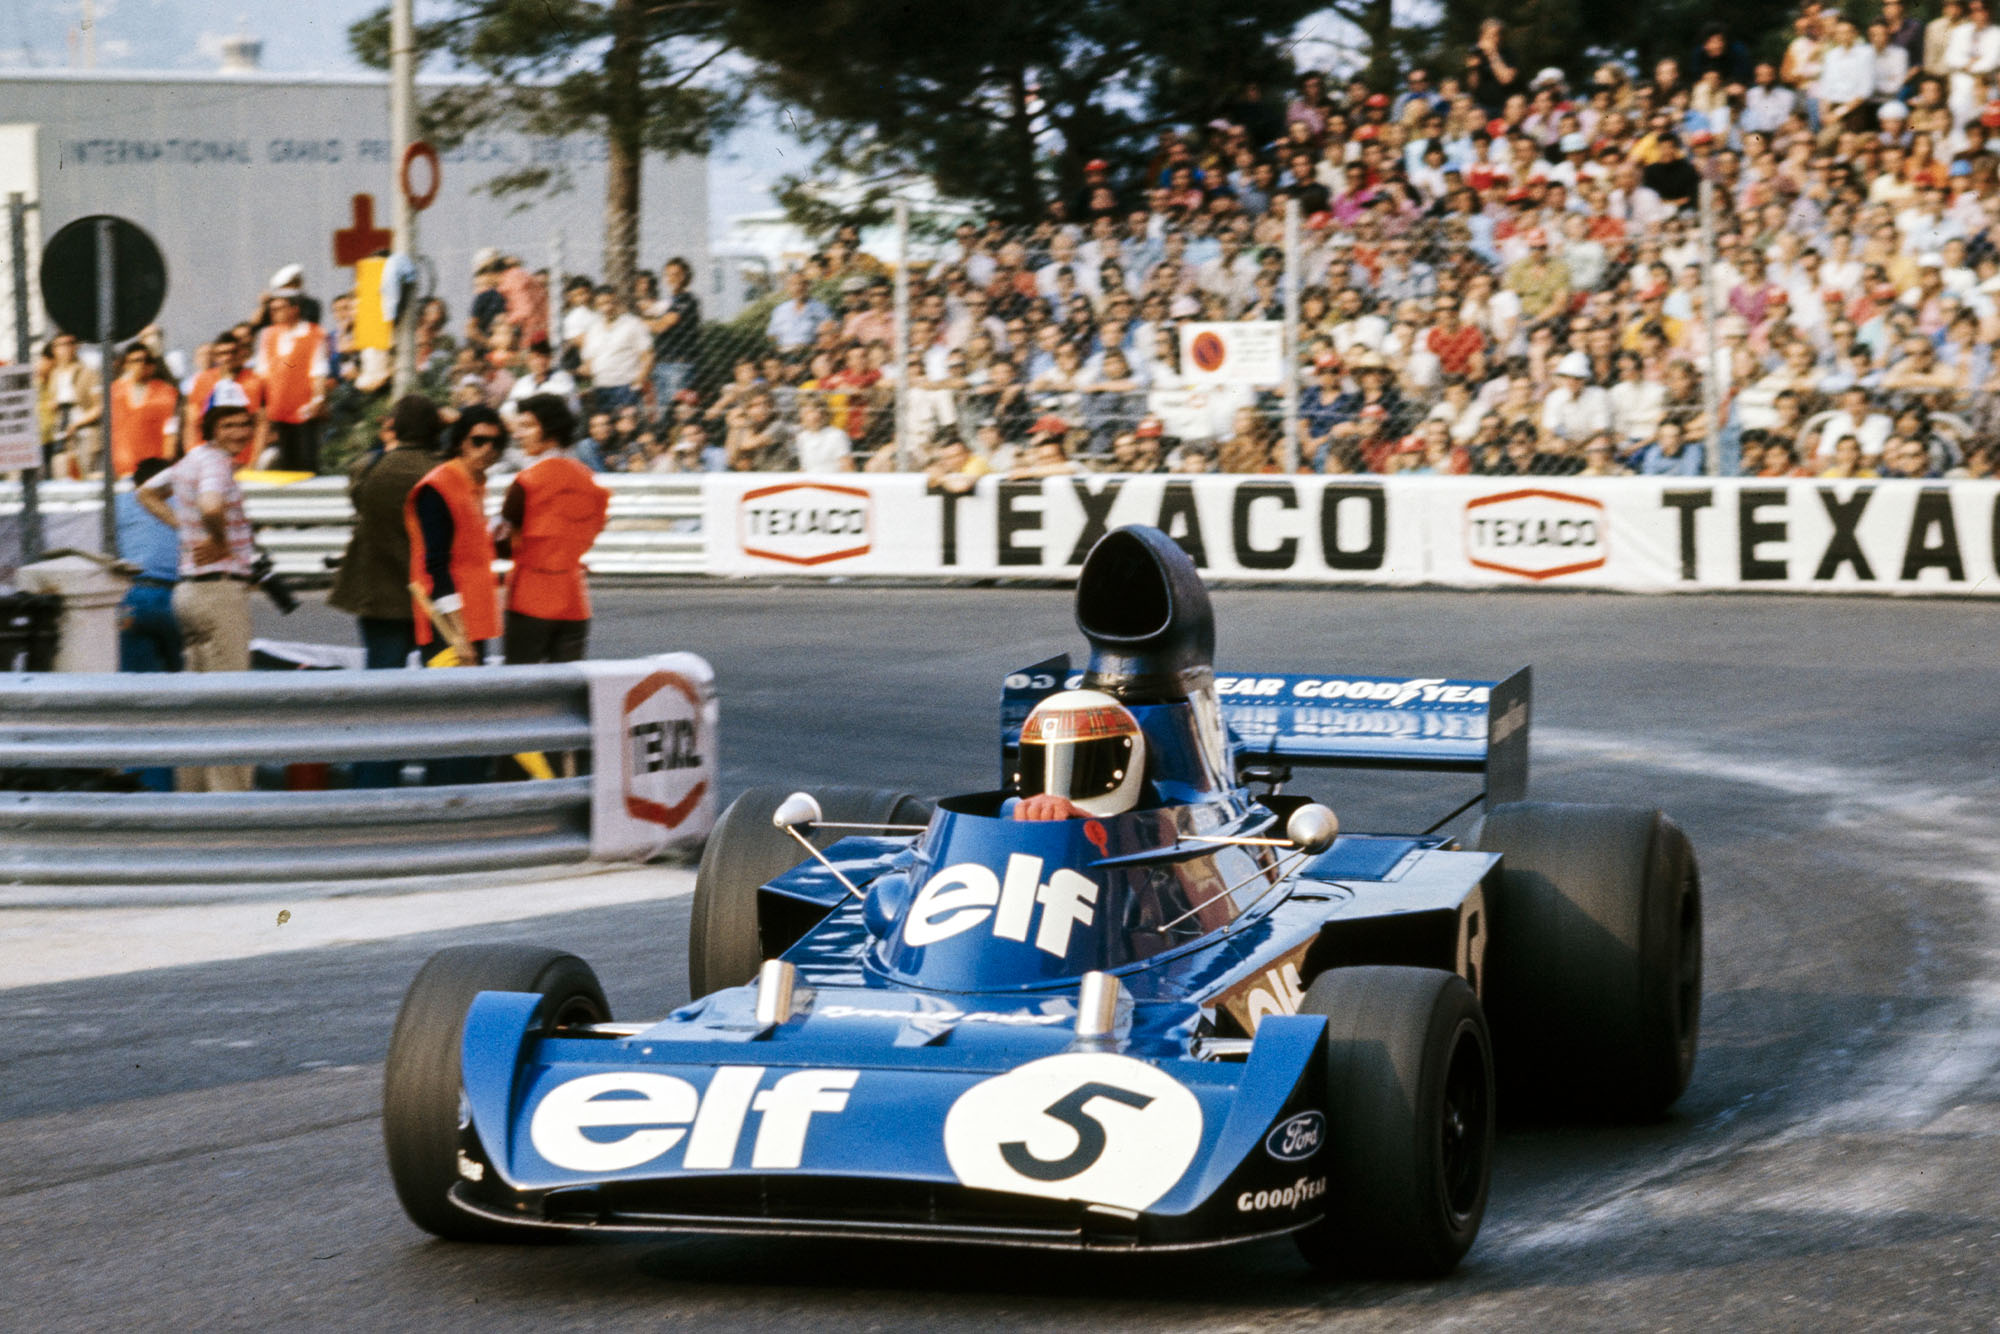 Jackie Stewart driving for Tyrrell at the 1973 Monaco Grand Prix.